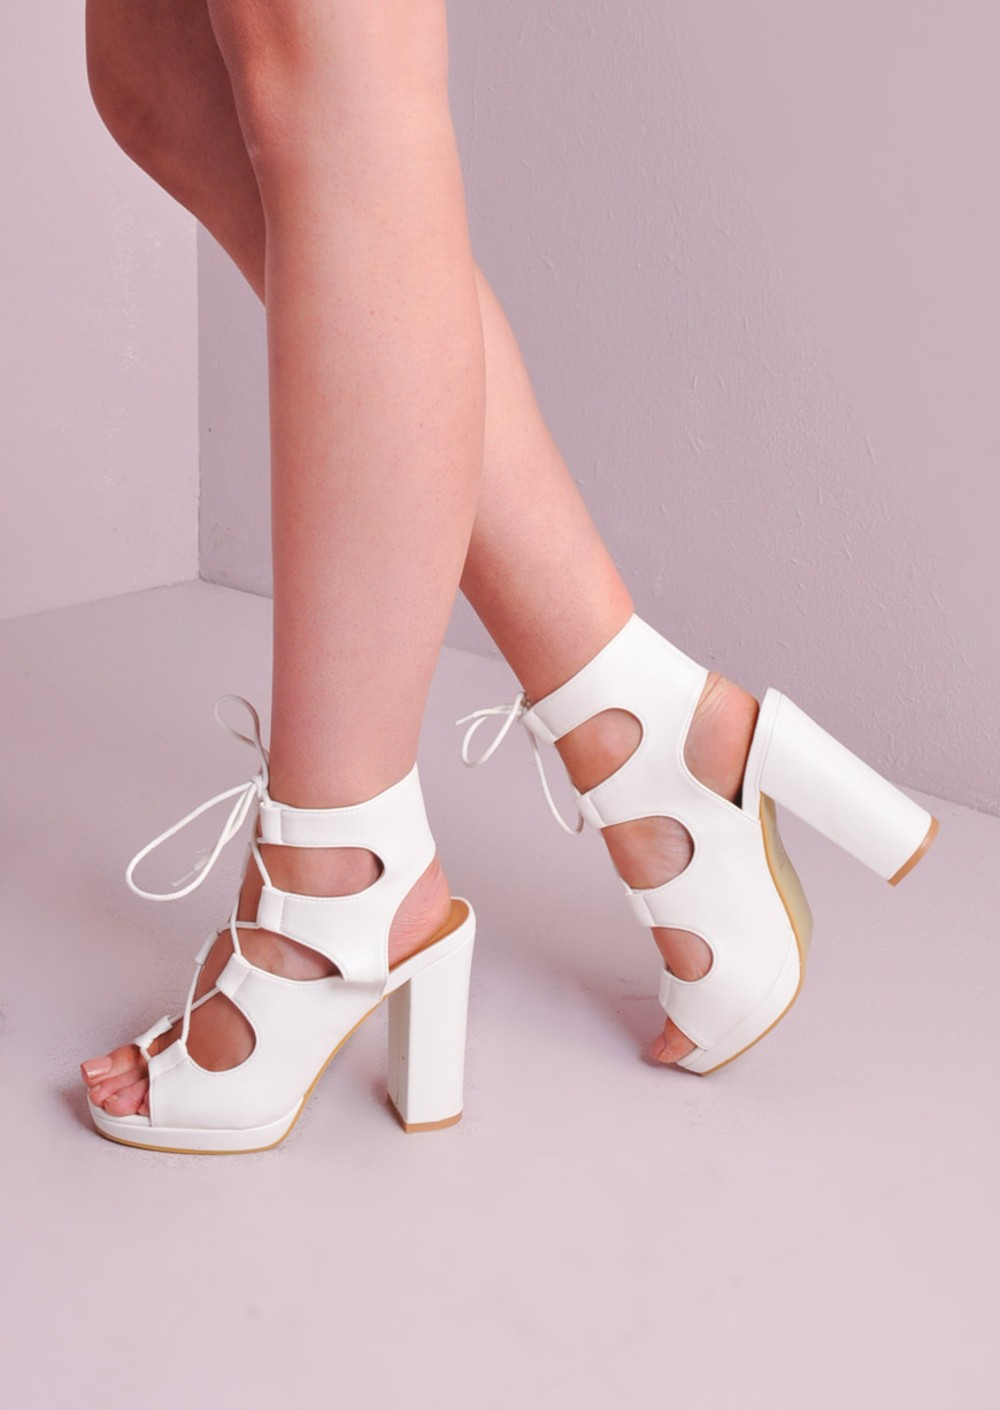 Lace Up Gladiator Block Platform Heel Sandals Shoes White